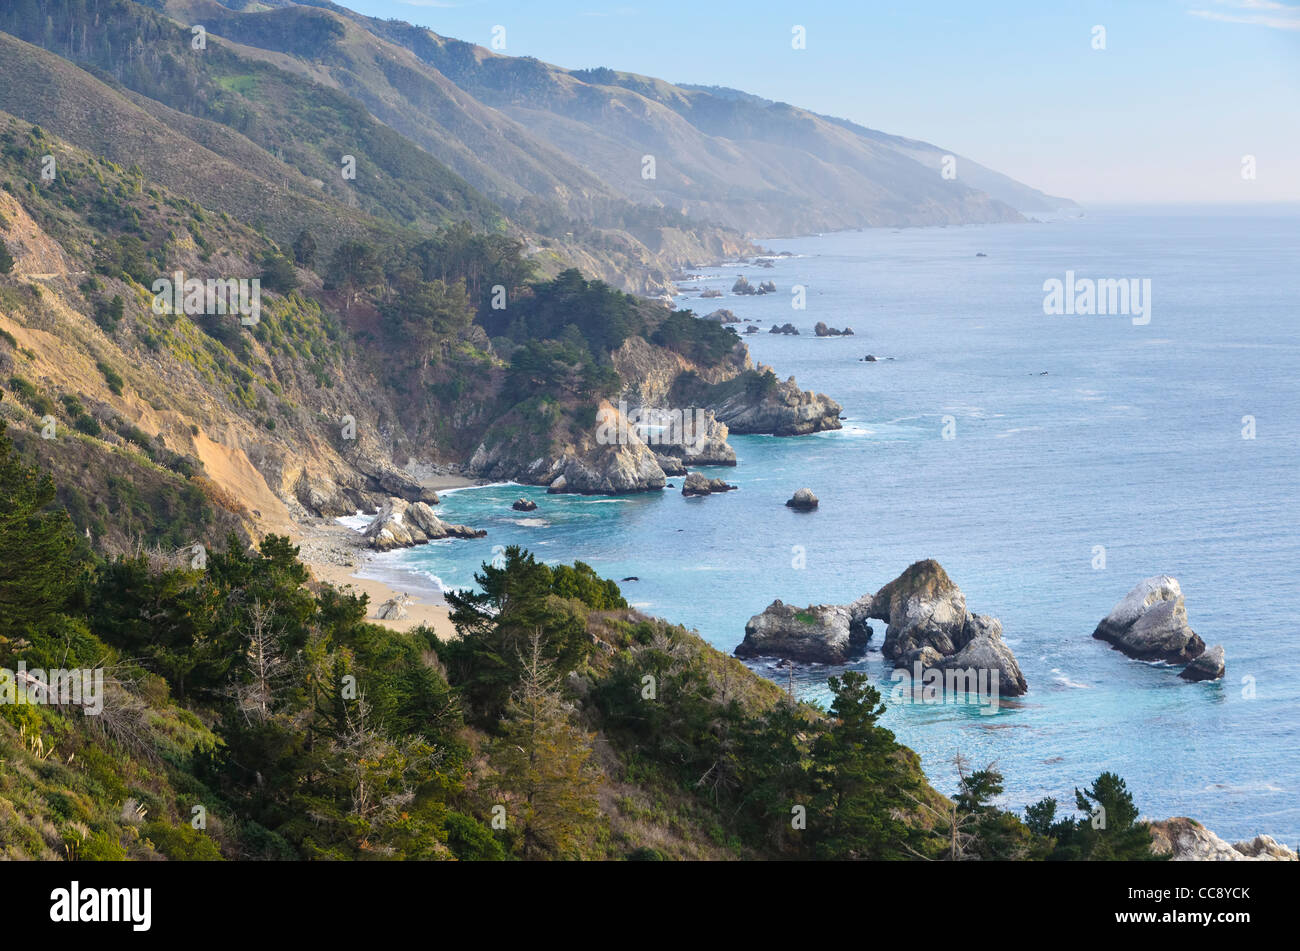 Costa central, Big Sur, cerca de Monterrey, California Imagen De Stock